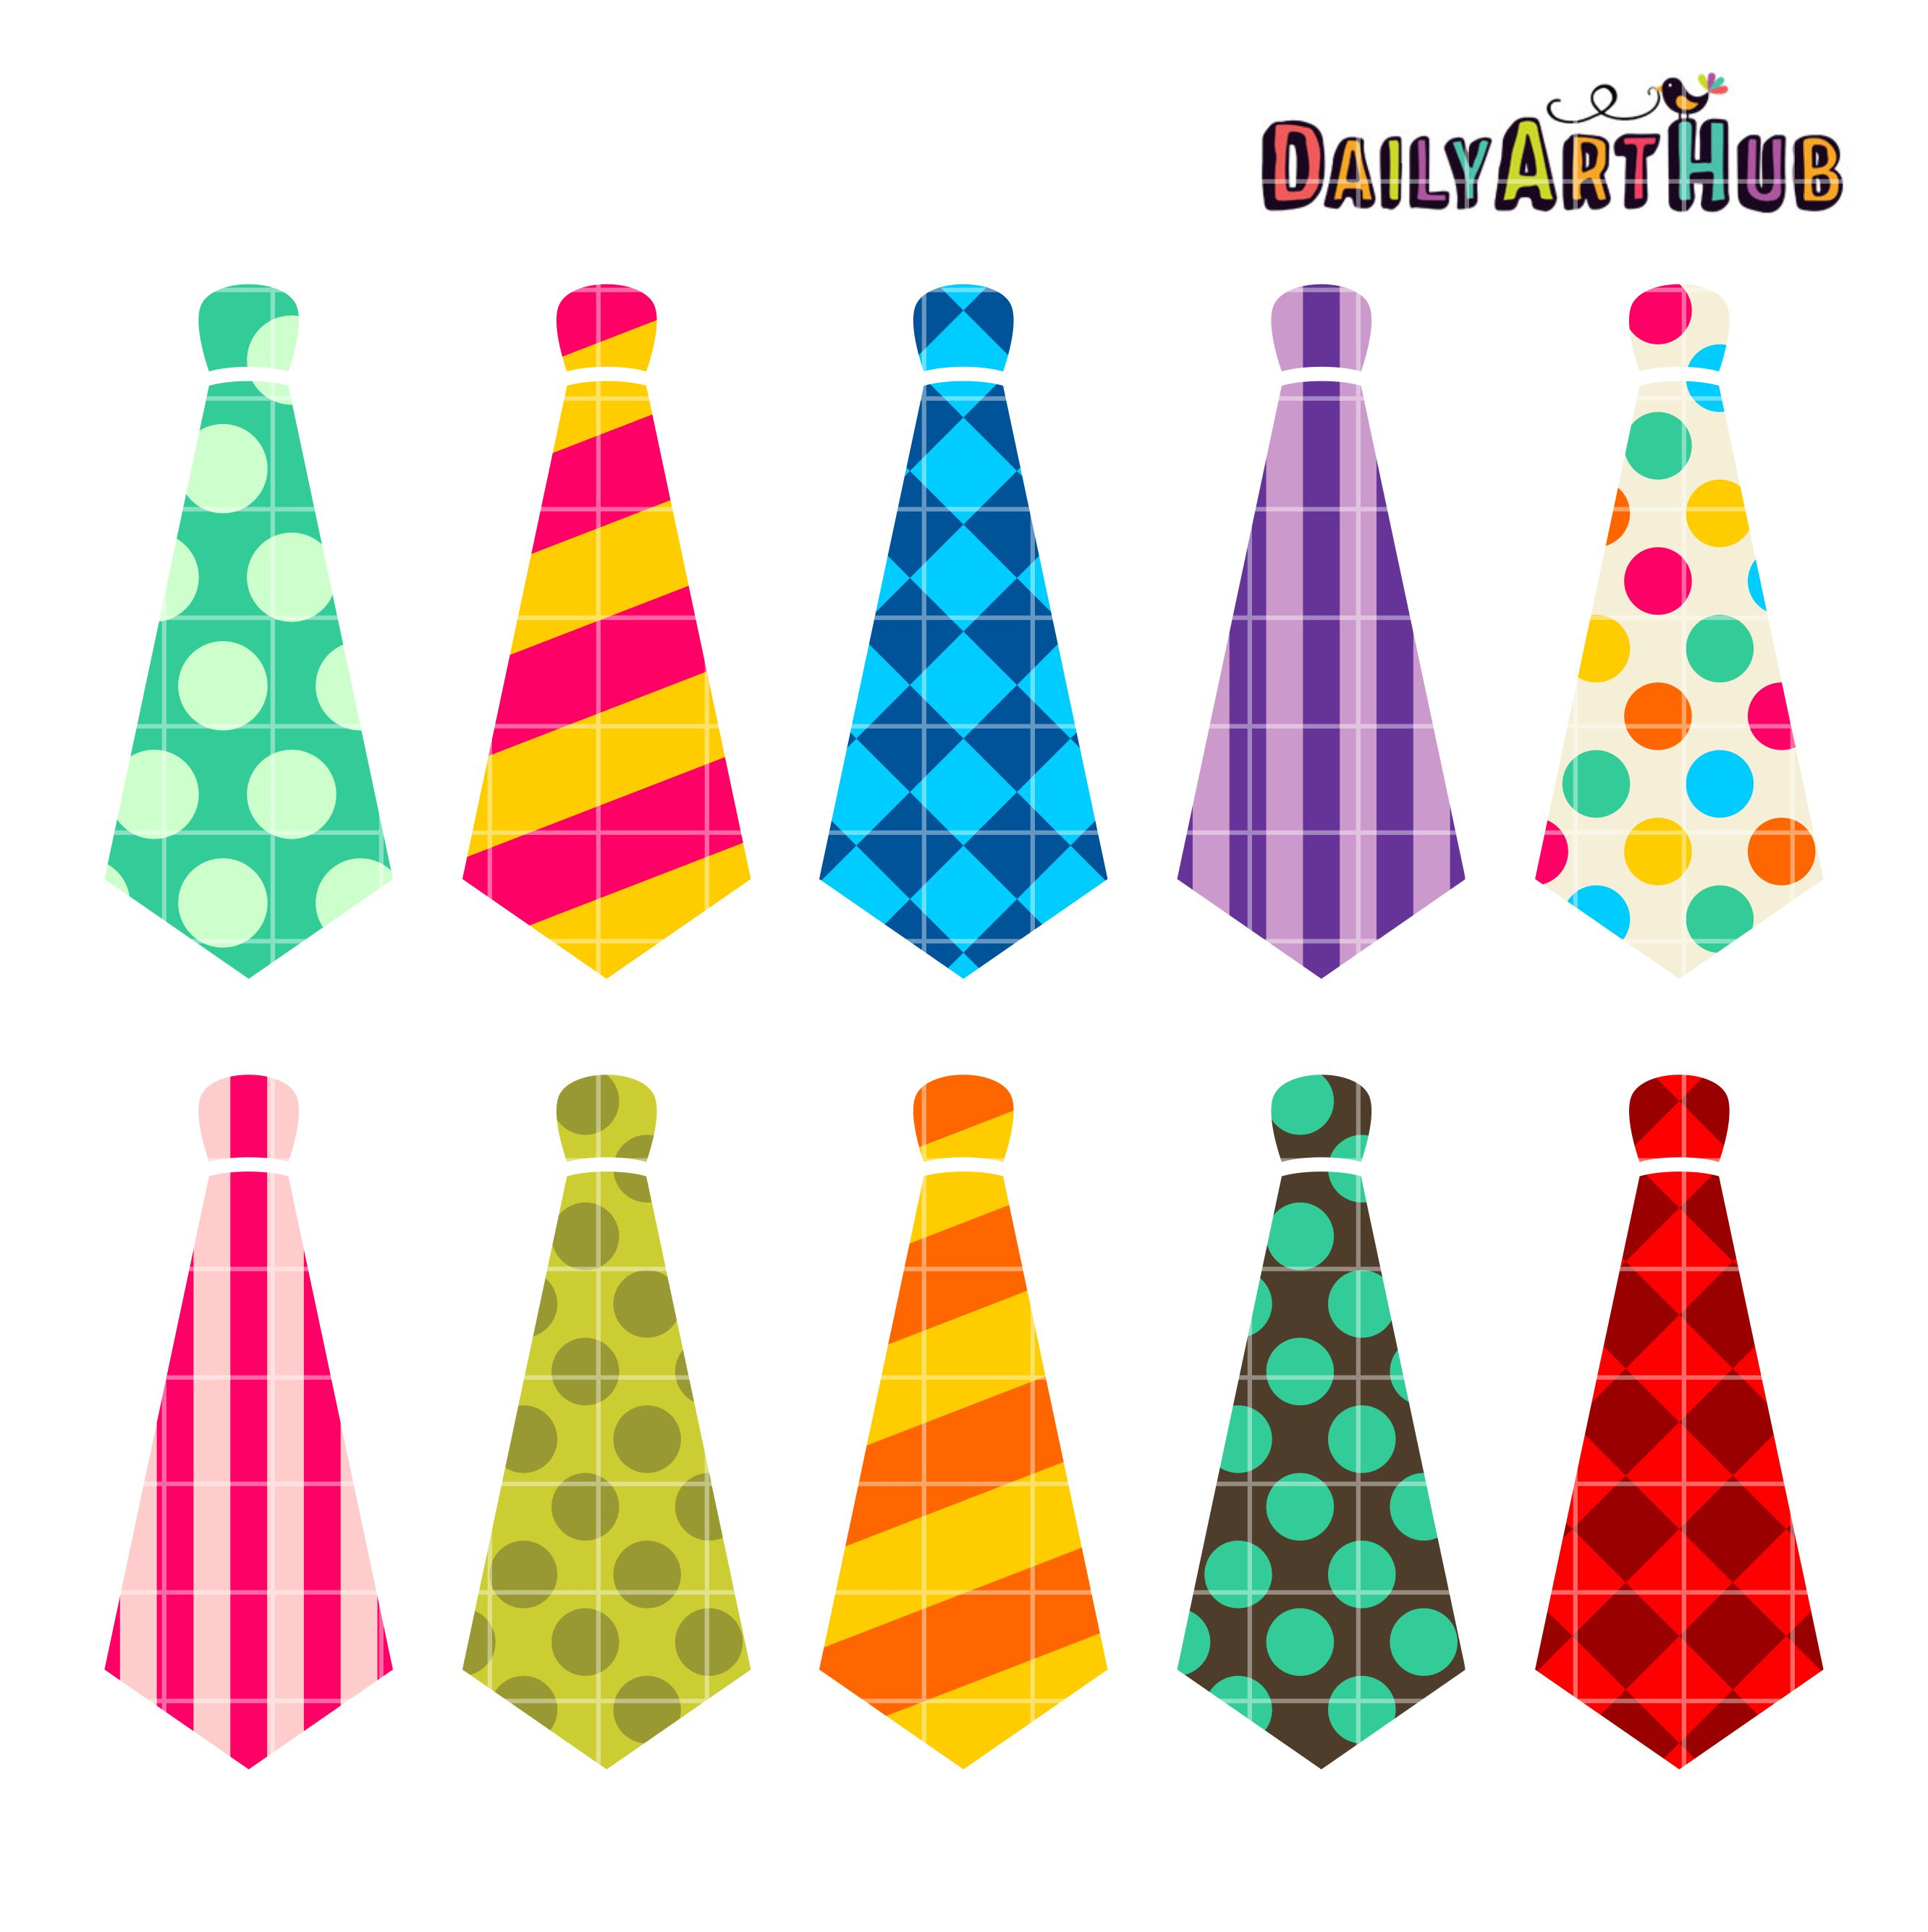 Neckties Clip Art Set | Daily Art Hub